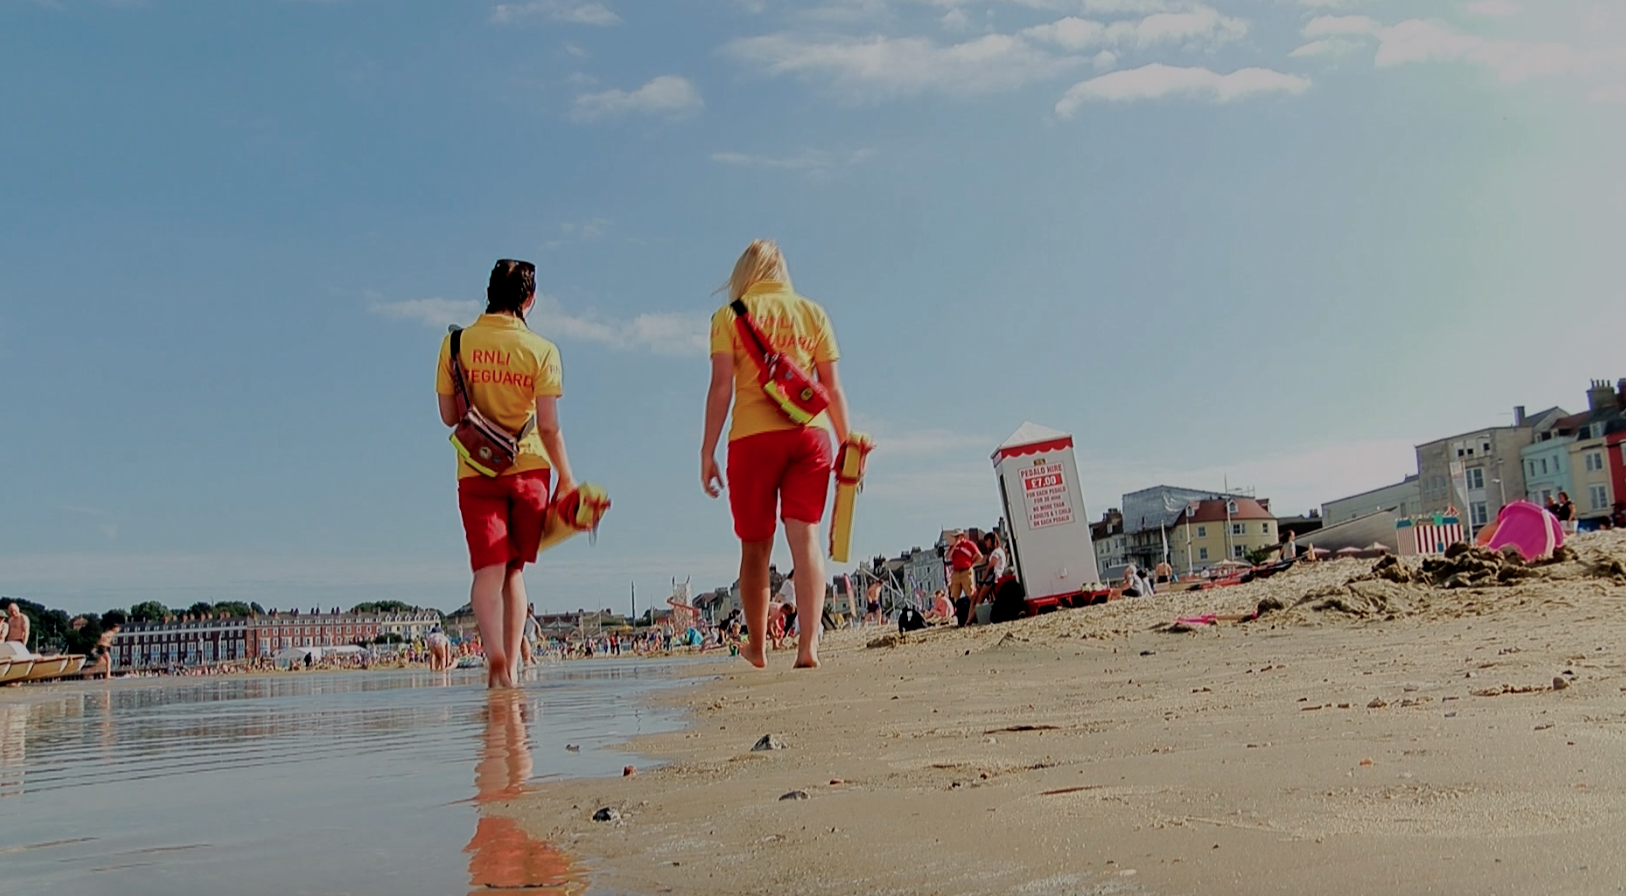 LifeguardsEmily Nineham and Olive Bown on duty in Weymouth